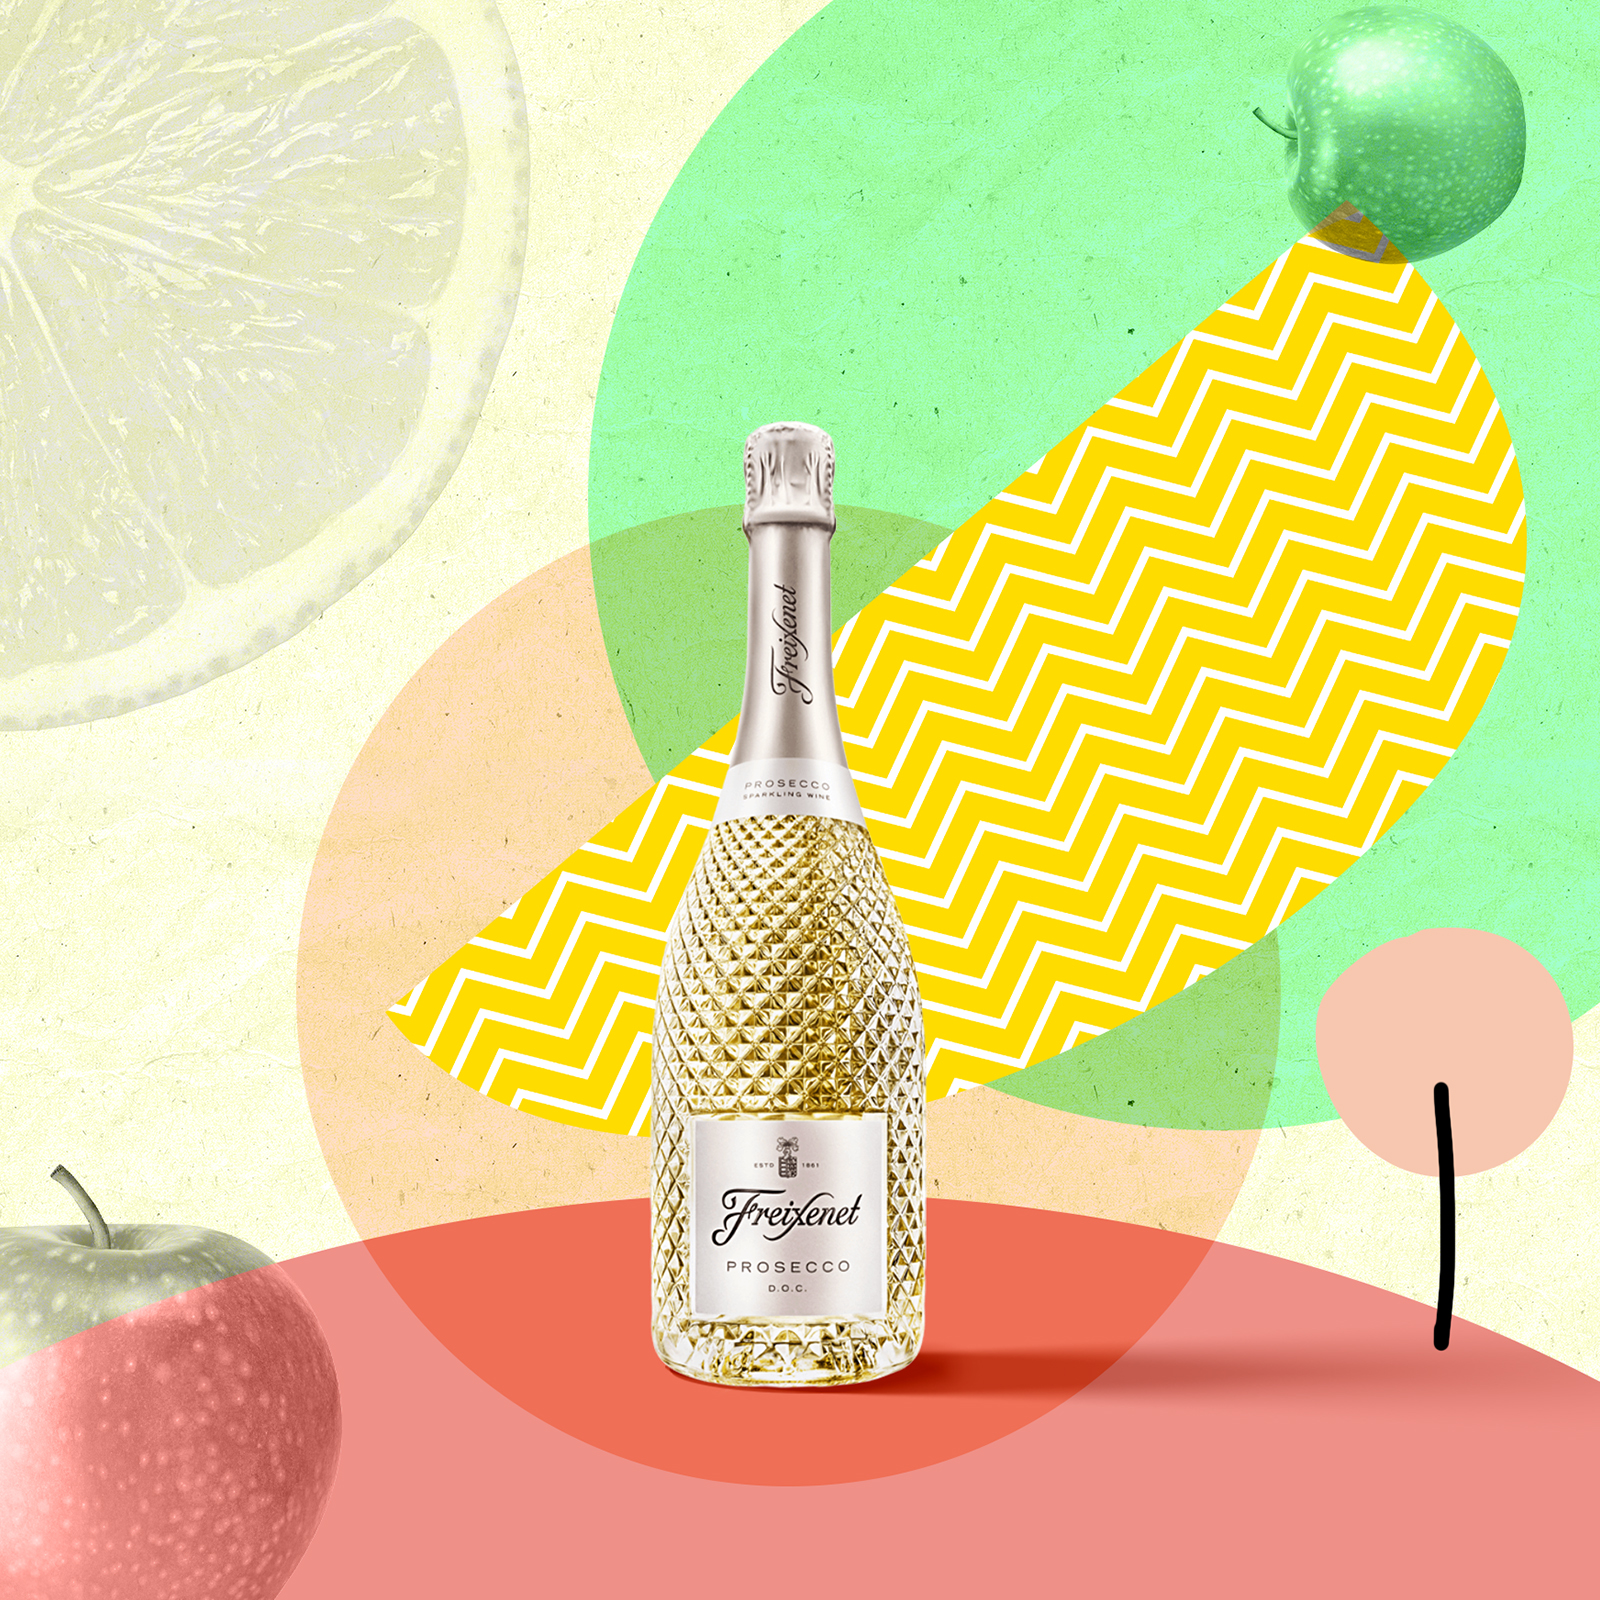 02_Freixenet_APRIL_CROPPED_v2.jpg